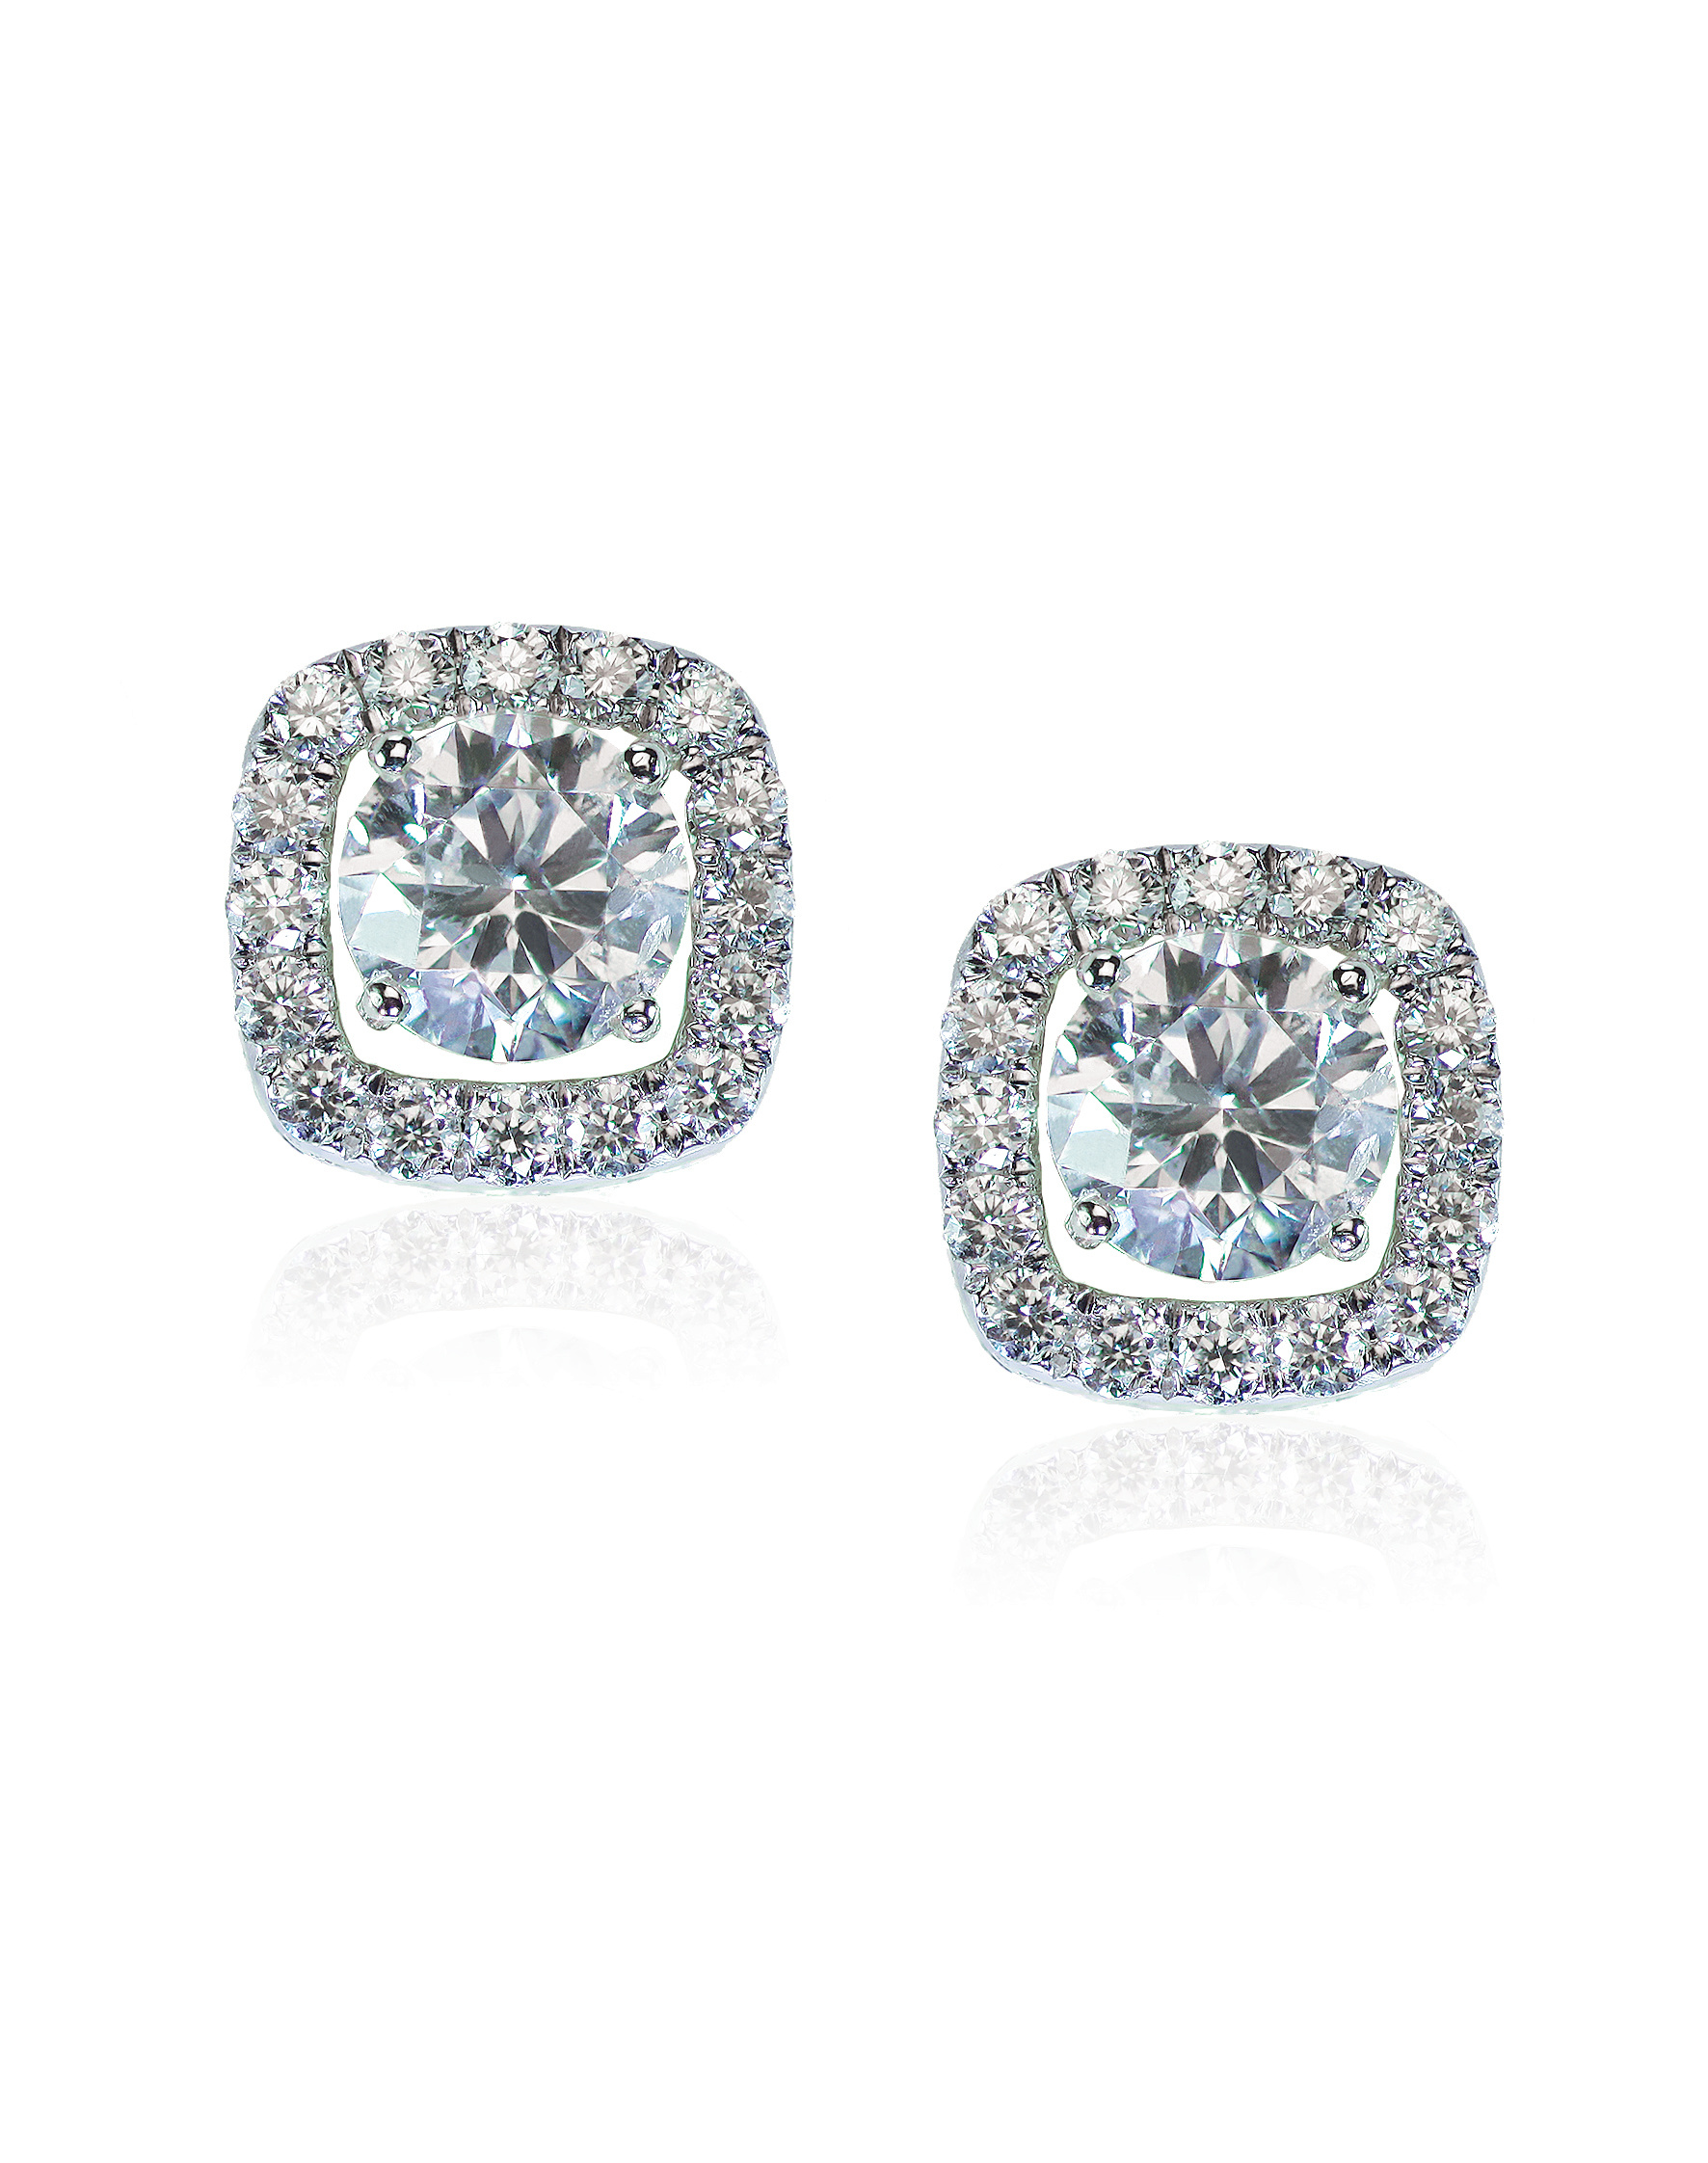 Diamond House Jewelers